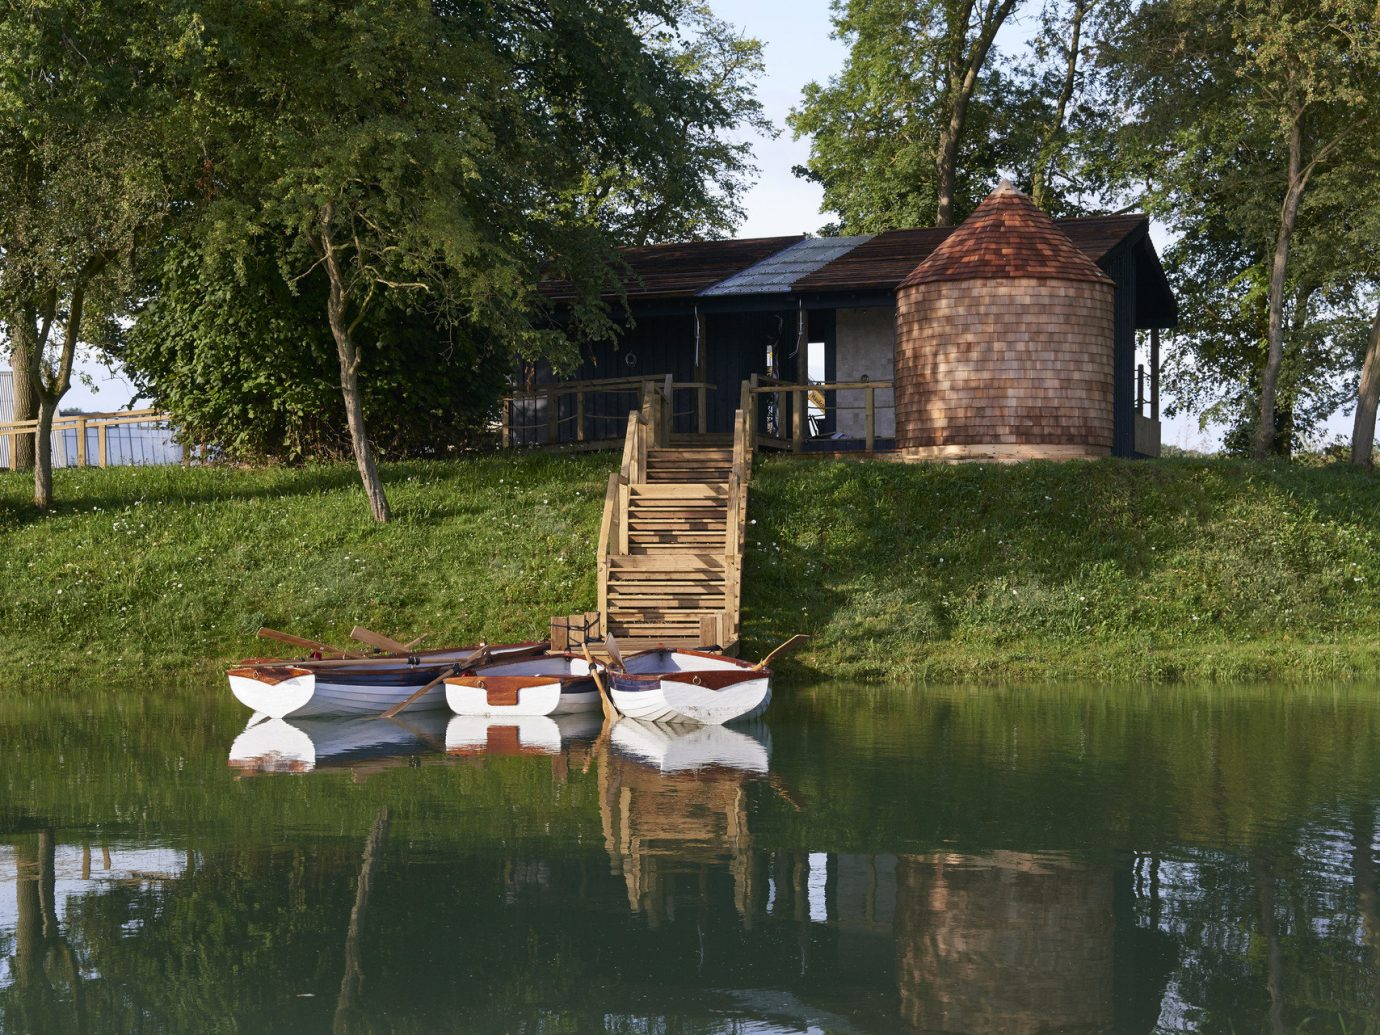 Hotels water tree outdoor grass Lake pond River house Nature rural area waterway surrounded swimming